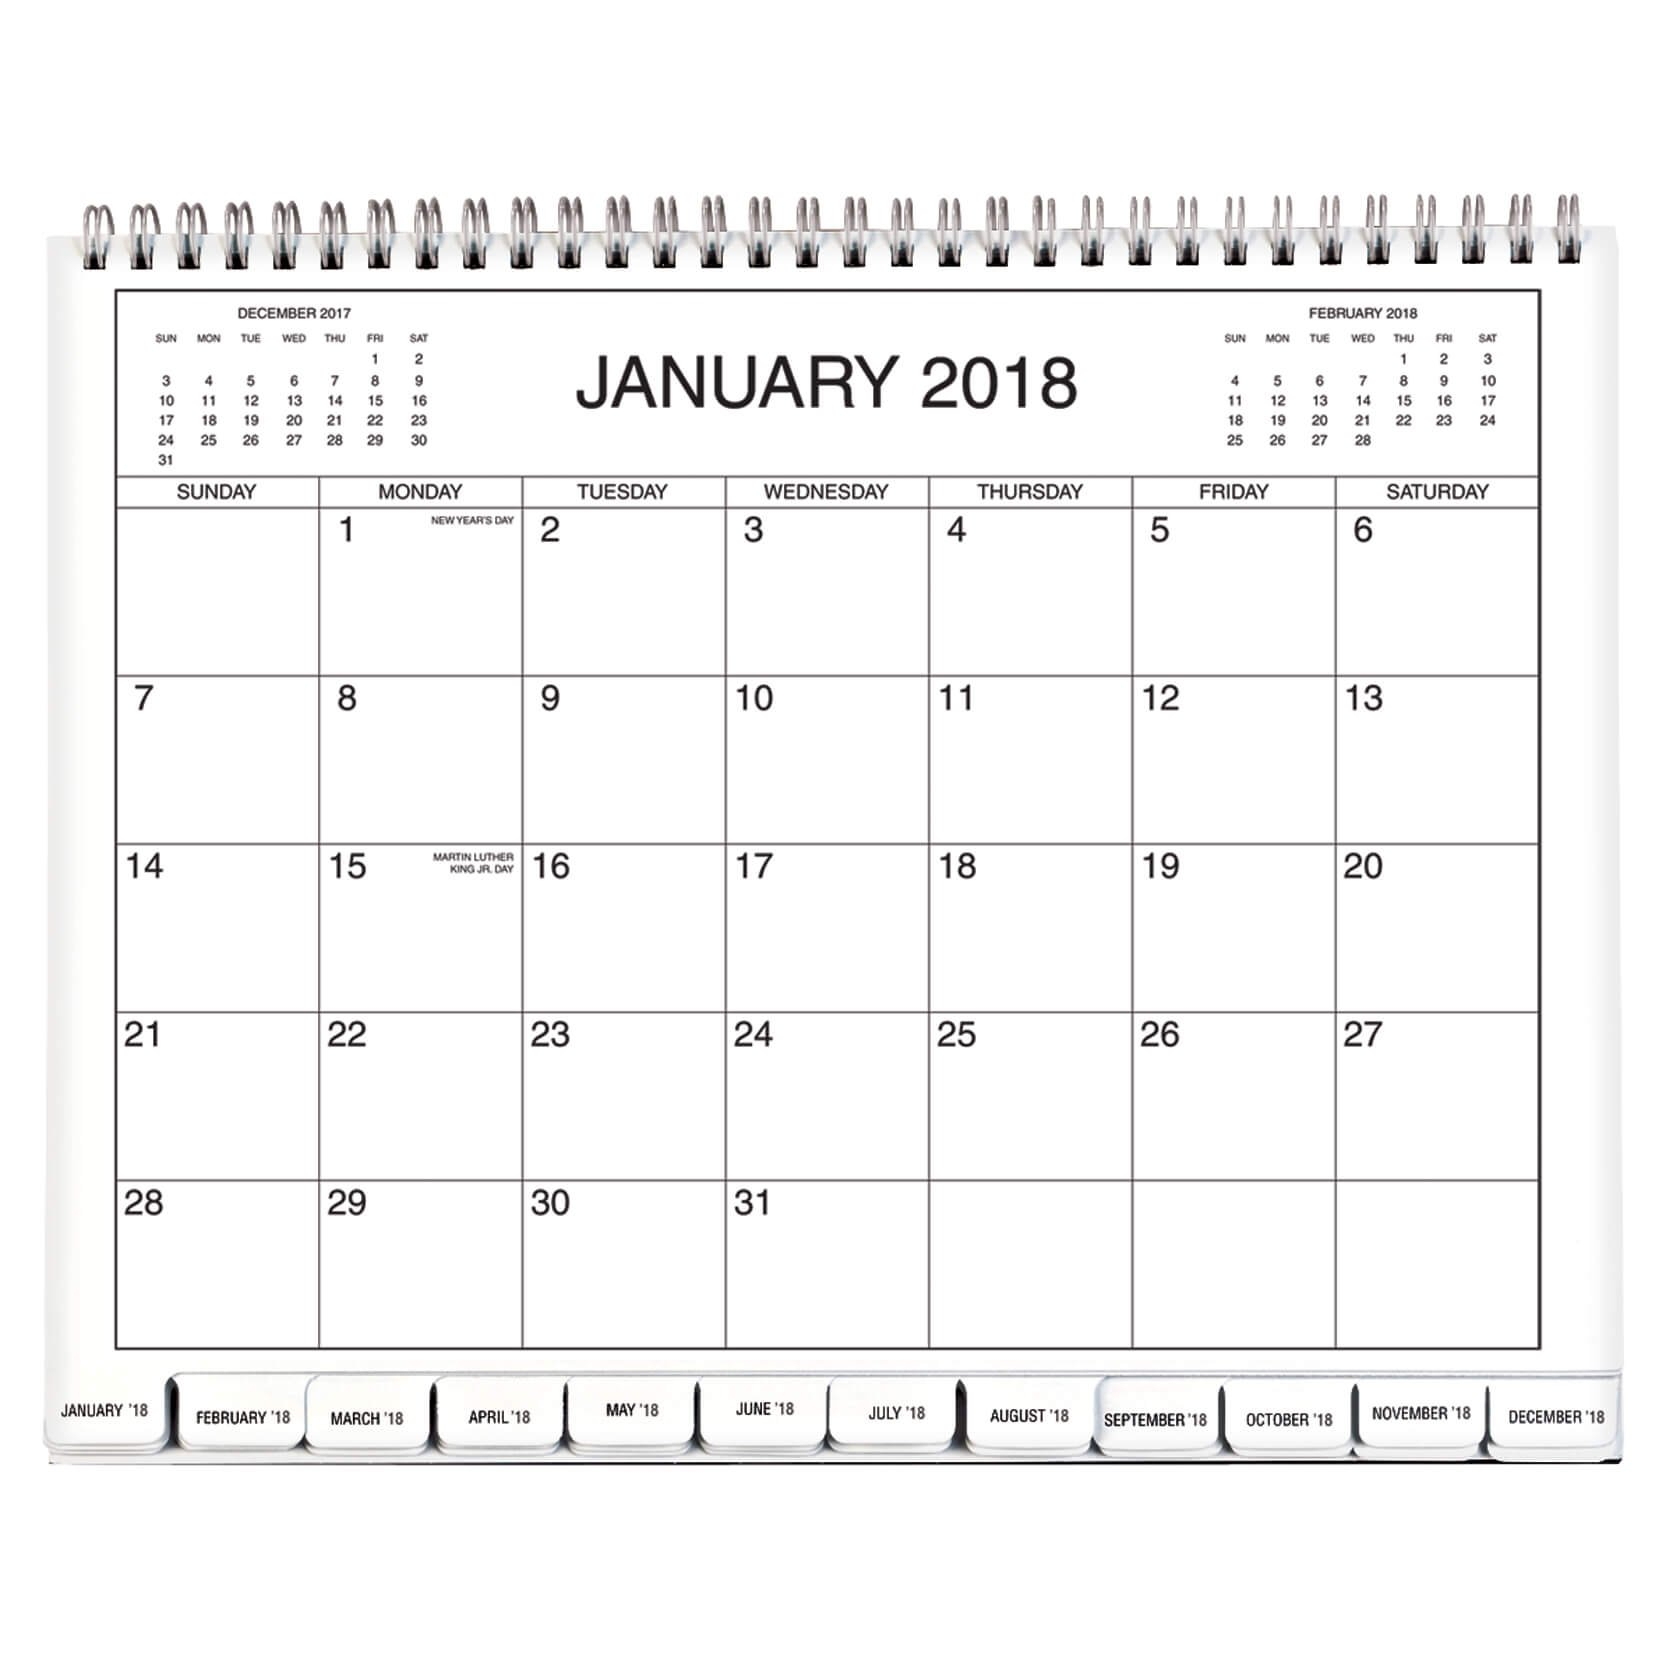 5 Year Calendar 2018-2019-2020-2021-2022 - Monthly Calendar - Walter Calendar 2019 Write In